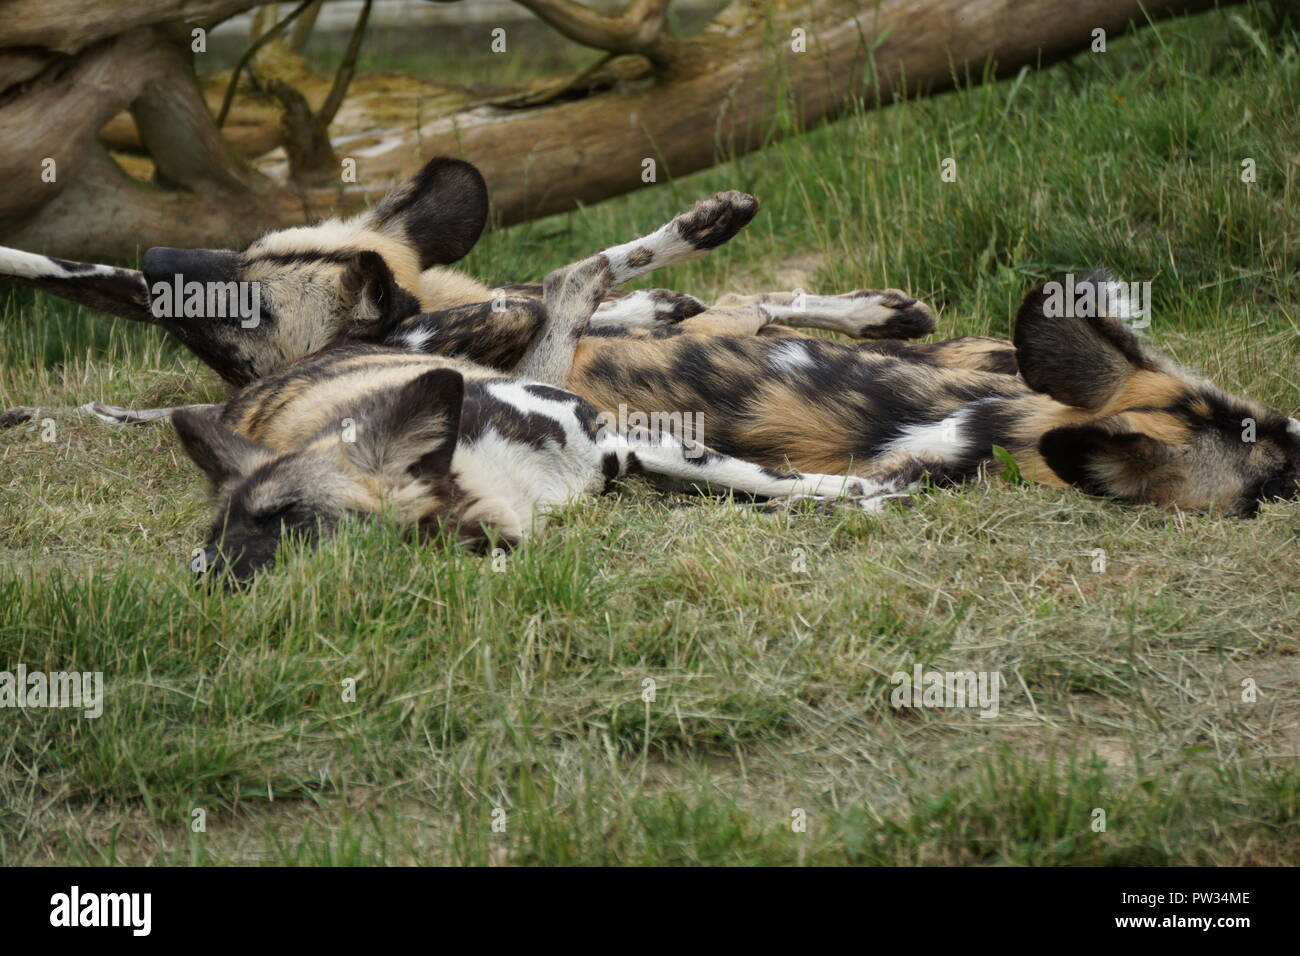 Colorful spotted African wild dogs sleeping in a pile on a hot summer day in the grass at the zoo - Stock Image